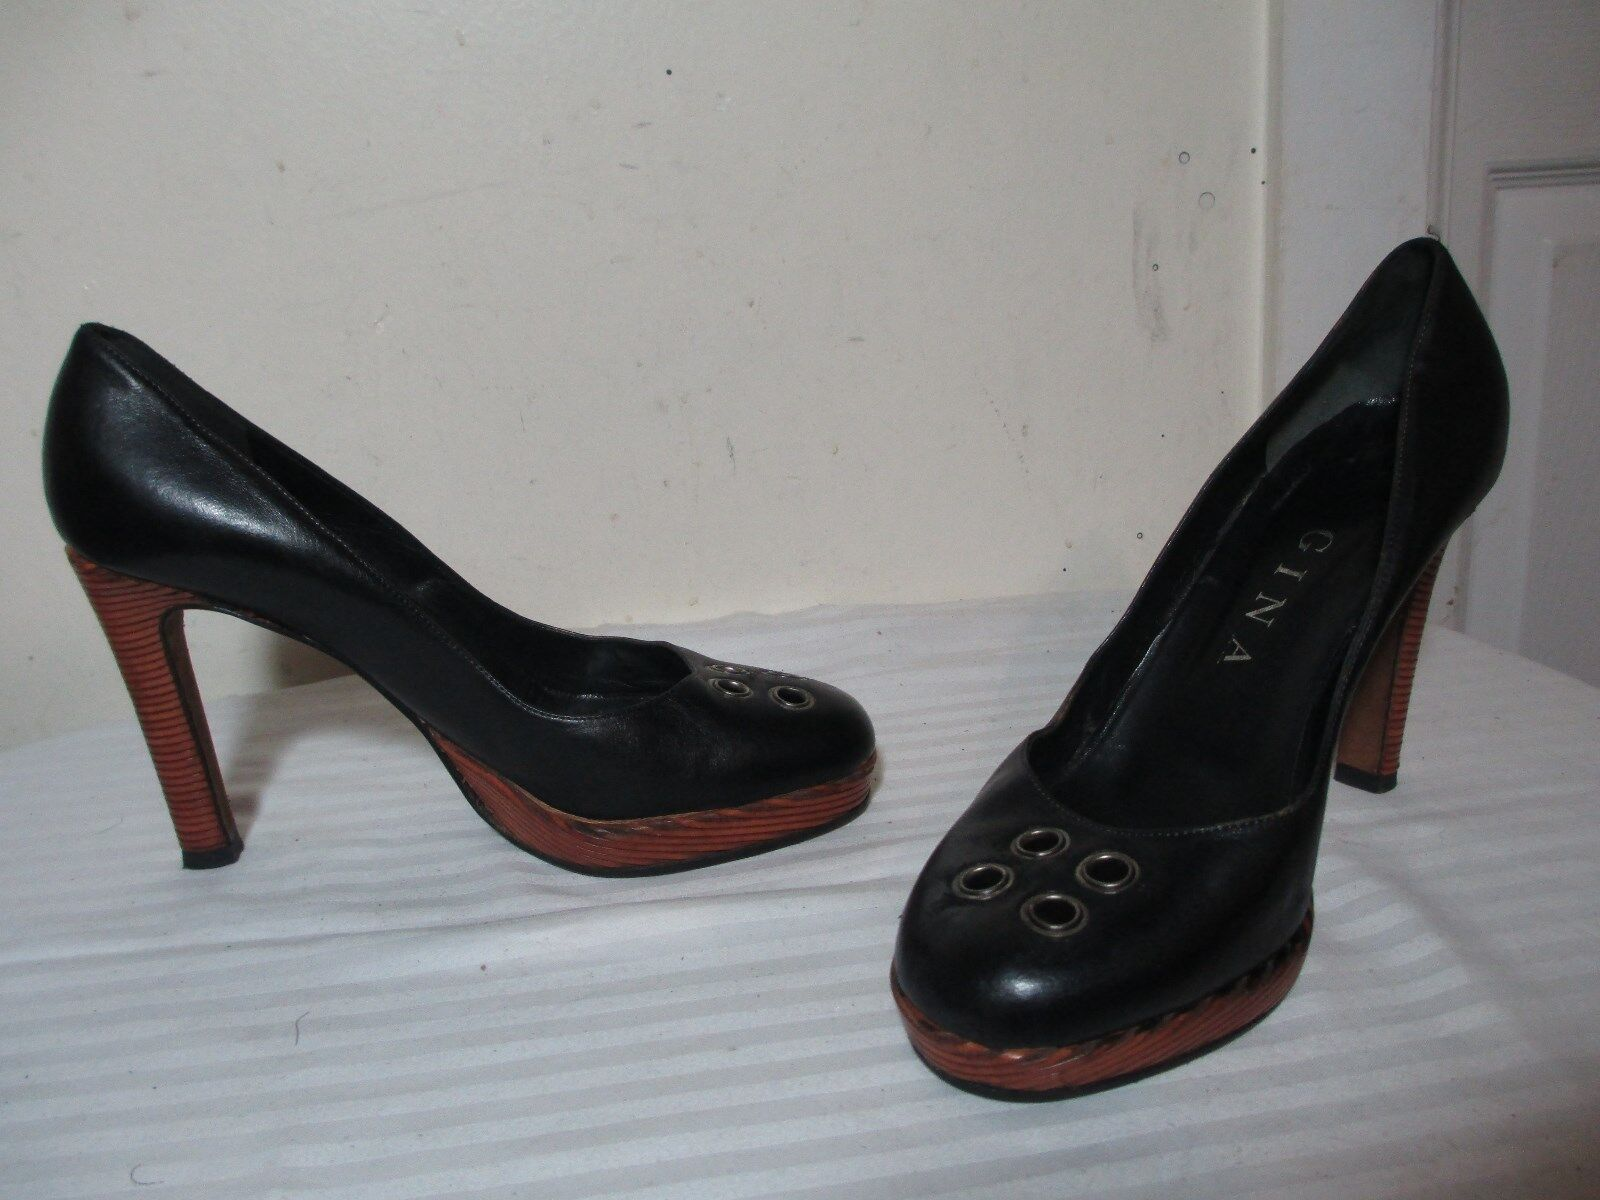 GINA BLK LEATHER PLATFORM METAL RINGS ALMOND TOE PUMPS UK 6 US 8 MADE IN ENGLAND